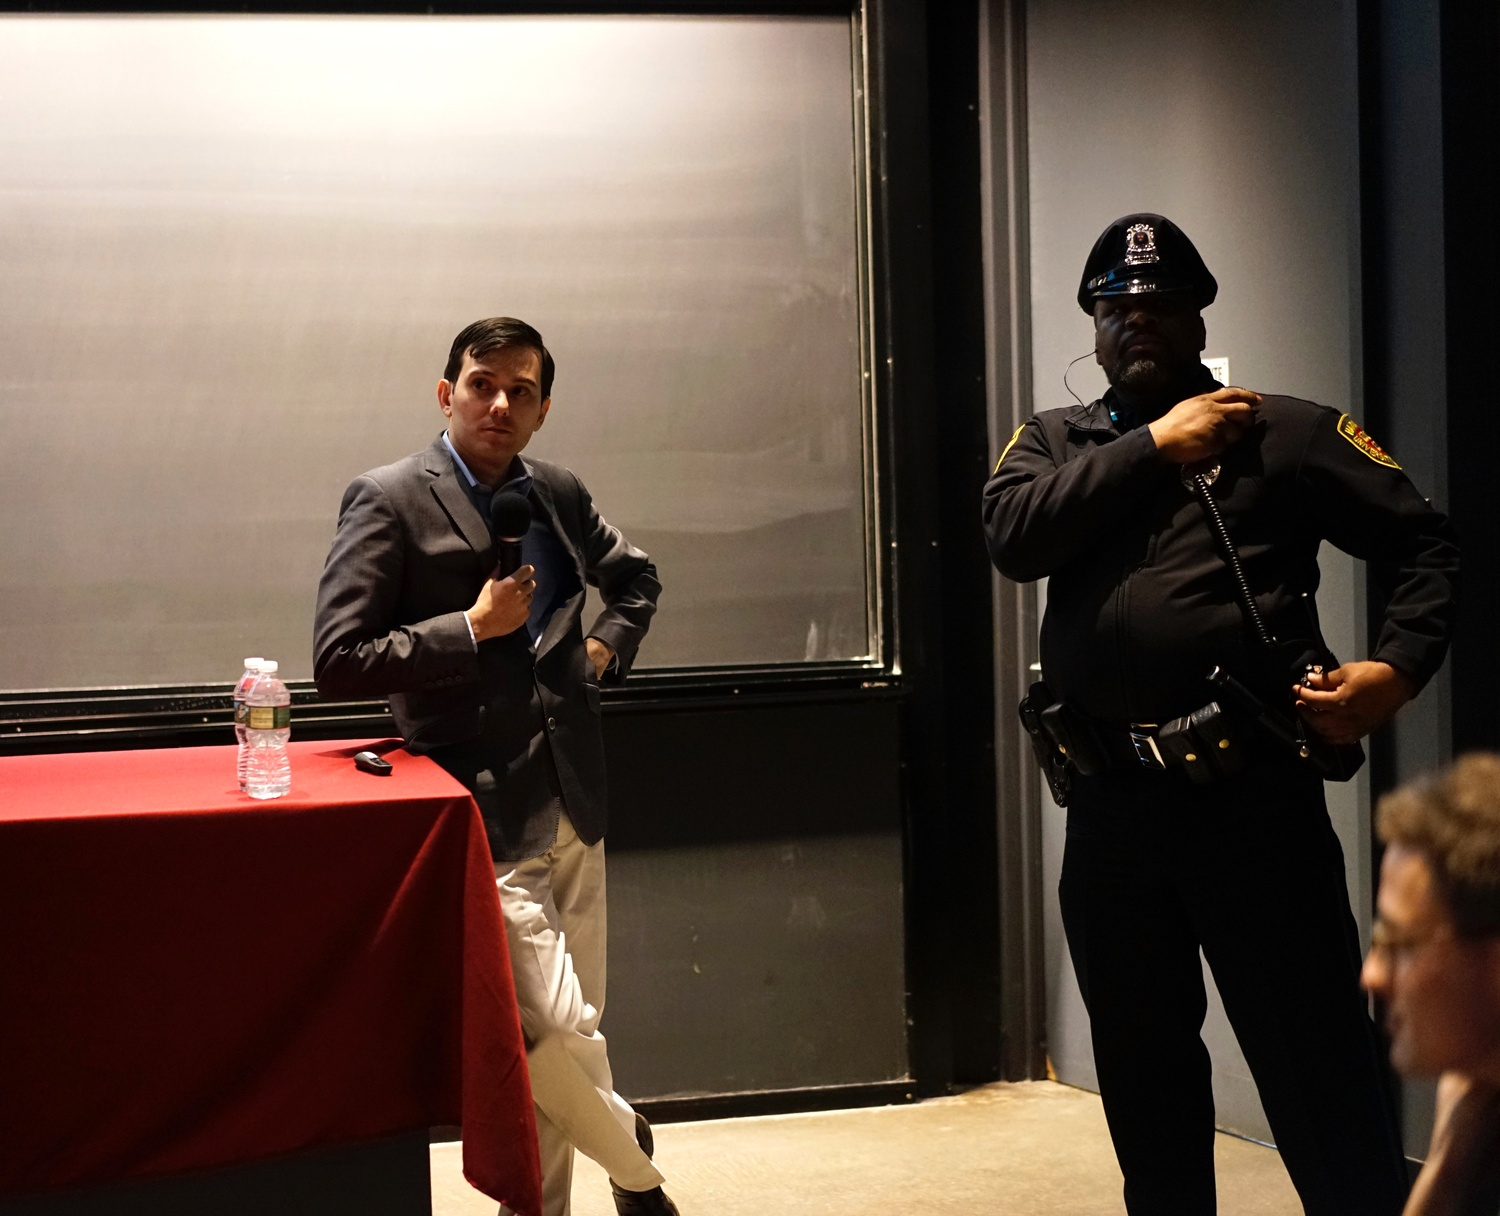 "Martin Shkreli speaks in the Science Center on Wednesday night at an event organized by the Harvard Financial Analysts Club. Protesters disrupted the event, standing up, walking out, and encouraging others to move to a ""teach-in"" panel on AIDS treatment and unethical pharmaceutical practices."